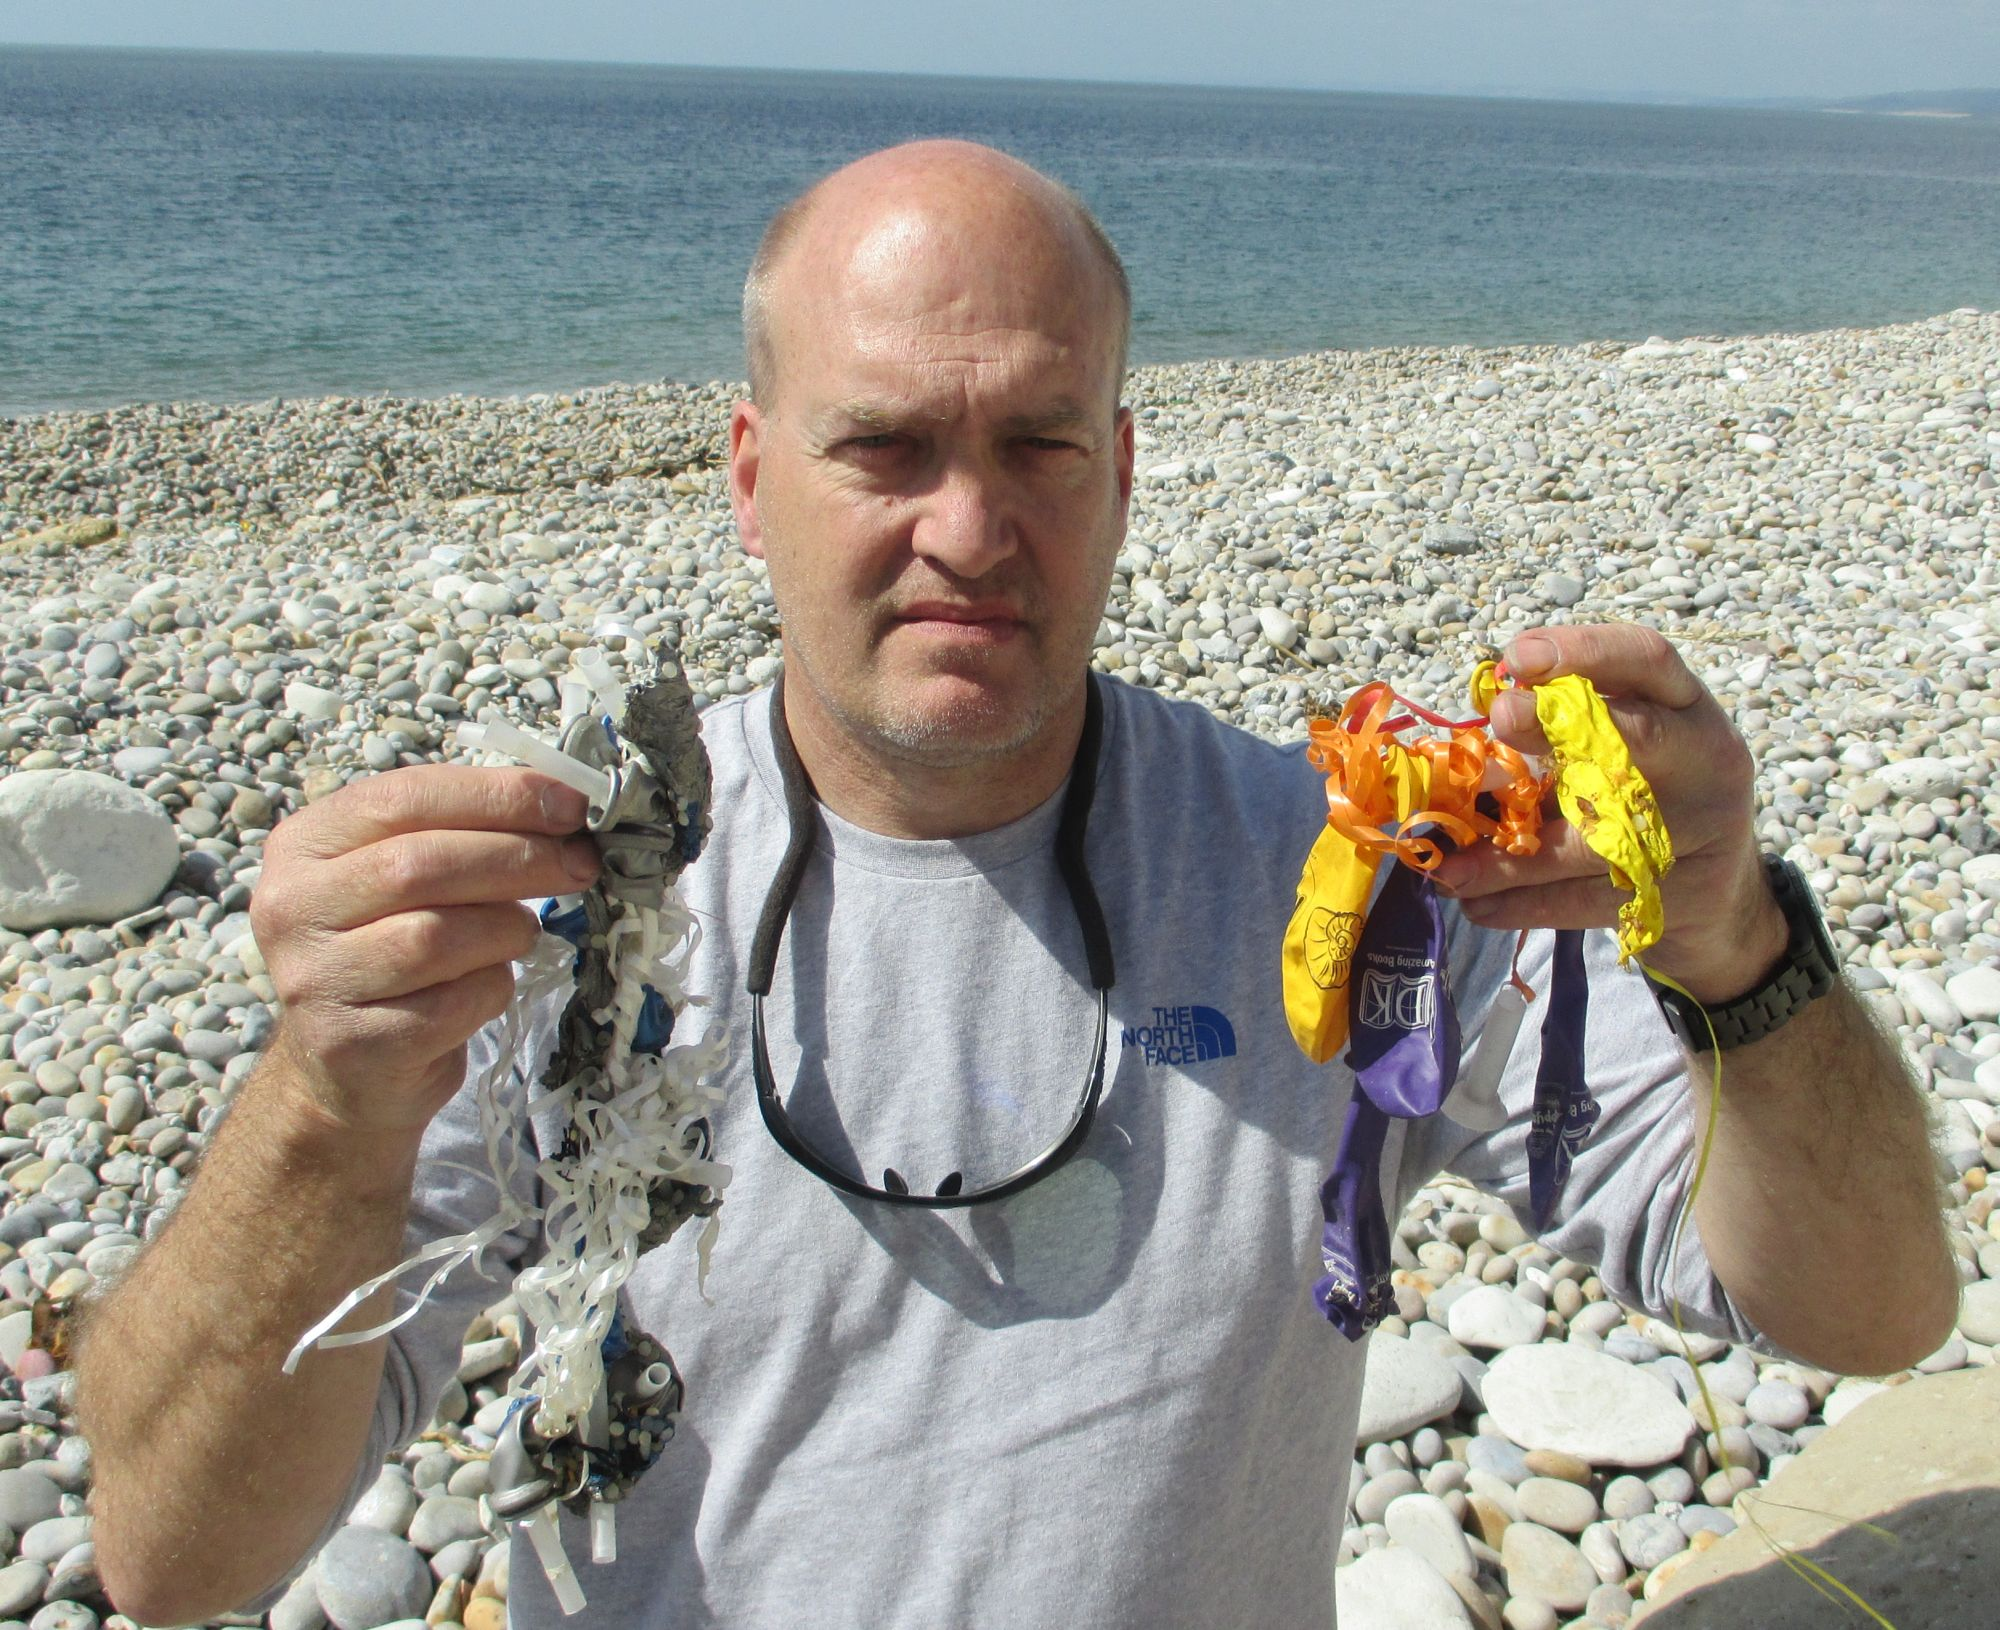 Environmental campaigner Steve Trewhella with balloons he has picked up from Dorset beaches over the years